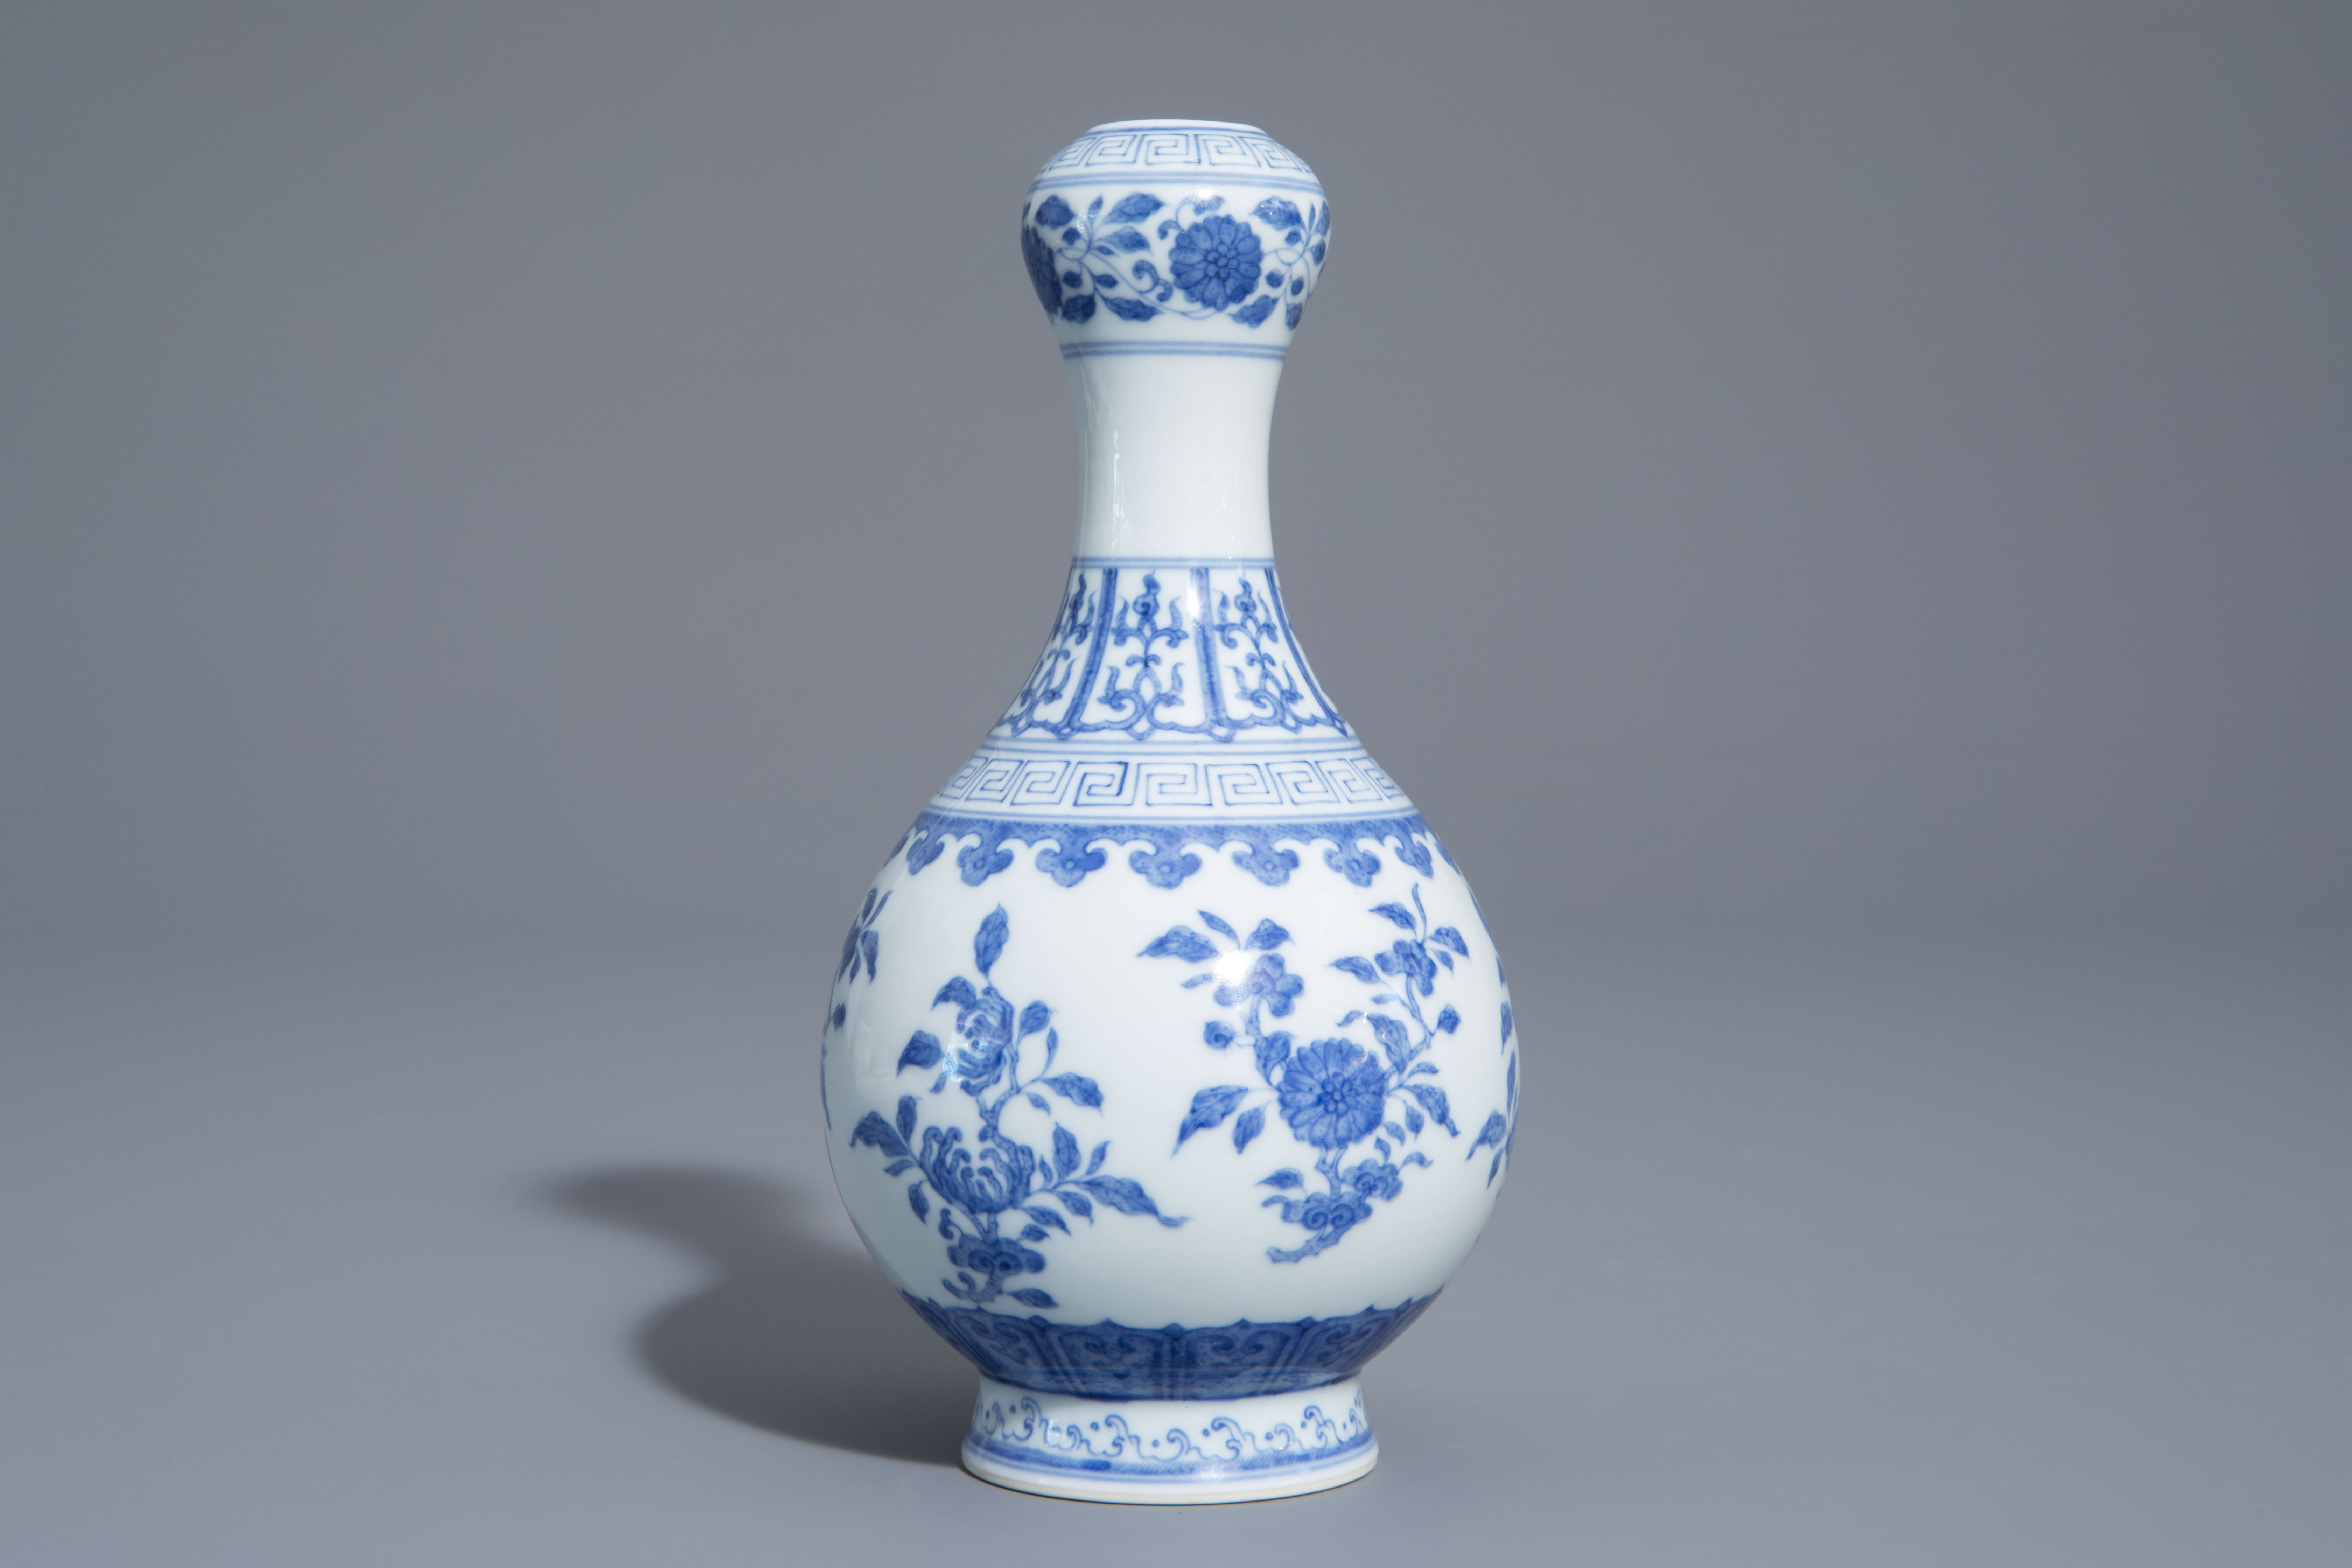 A Chinese blue and white garlic-head mouth vase with floral design, Qianlong mark, 20th C. - Image 5 of 7